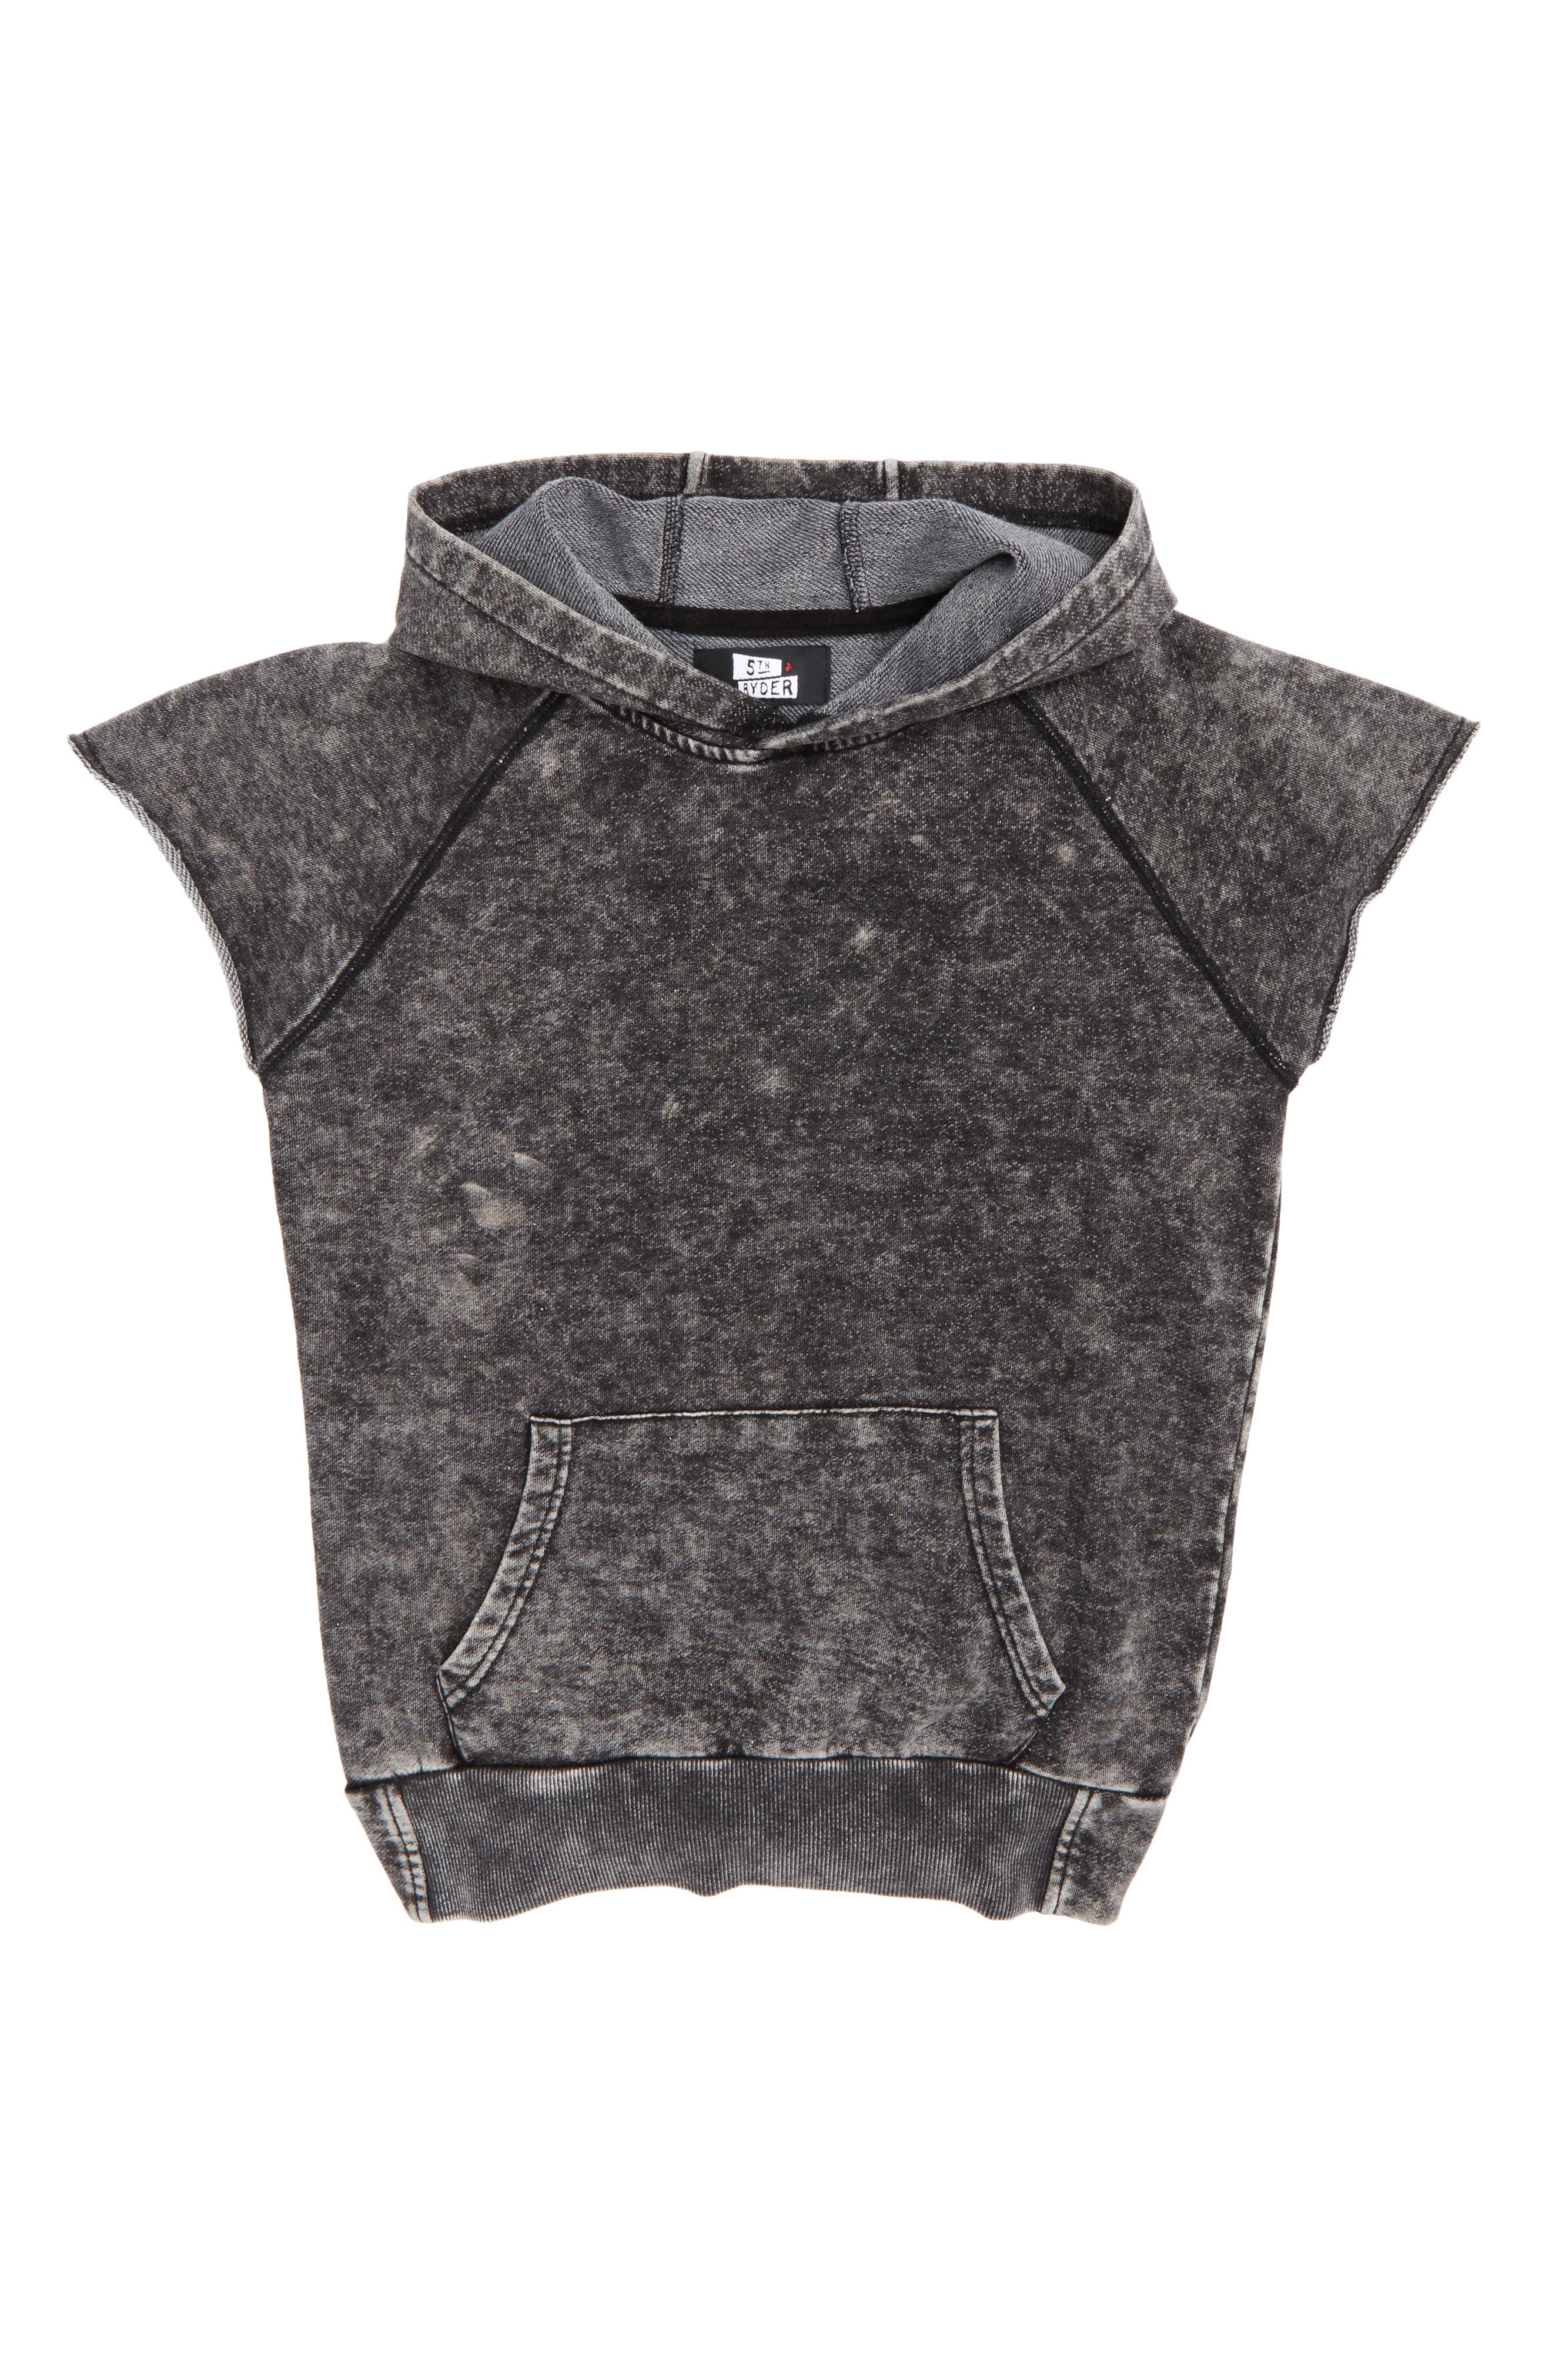 5th and Ryder Sleeveless Hoodie (Big Boys)